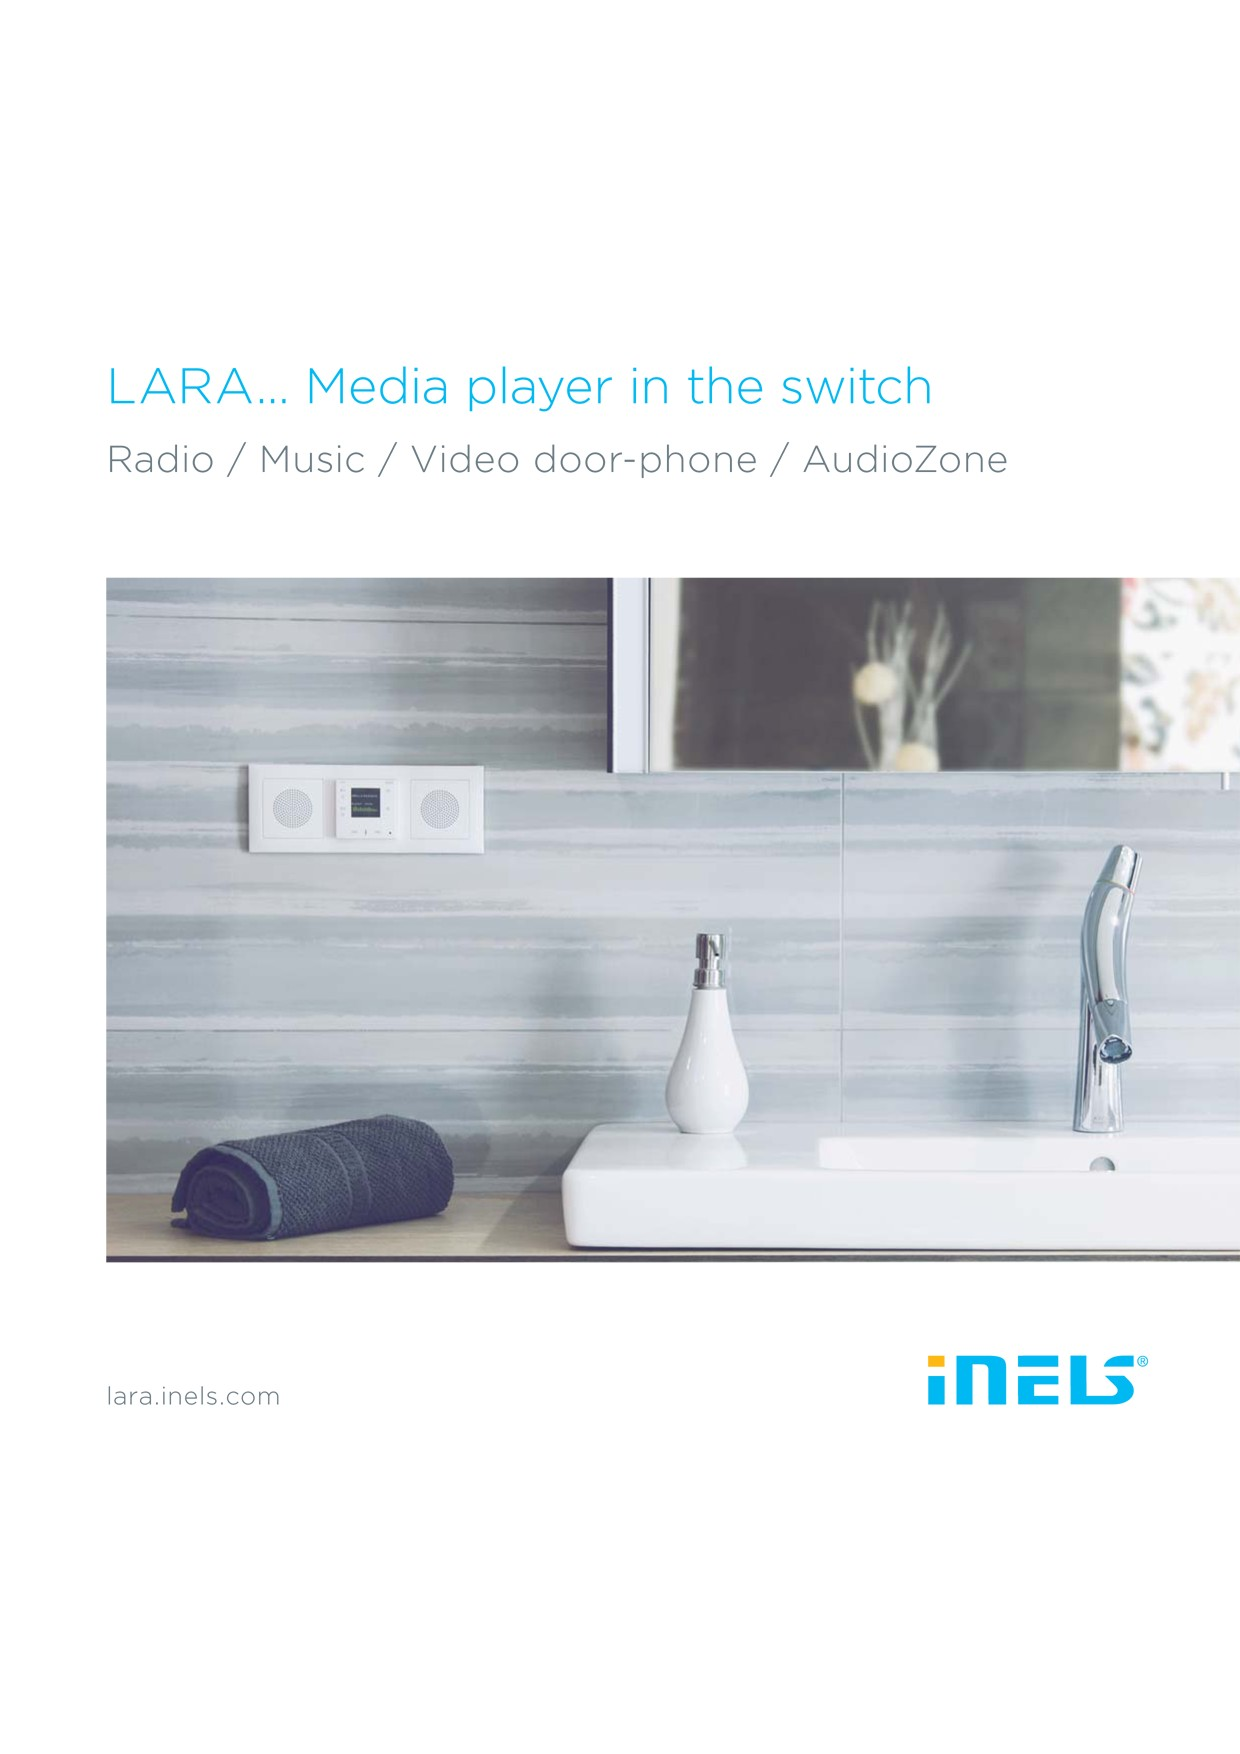 LARA… A media player in the switch preview